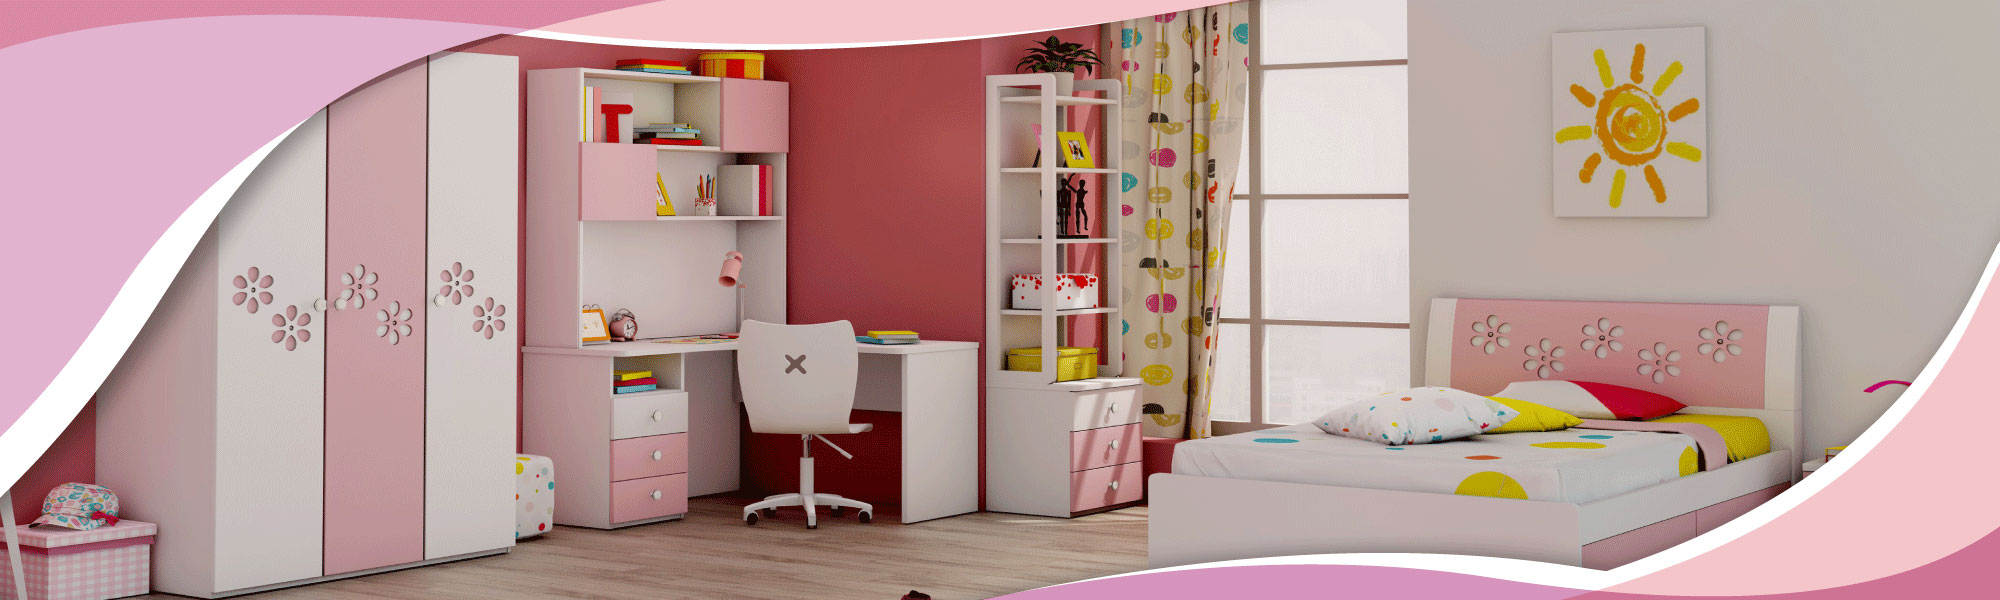 Bring comfort and safety in your childs room with exclusive furniture